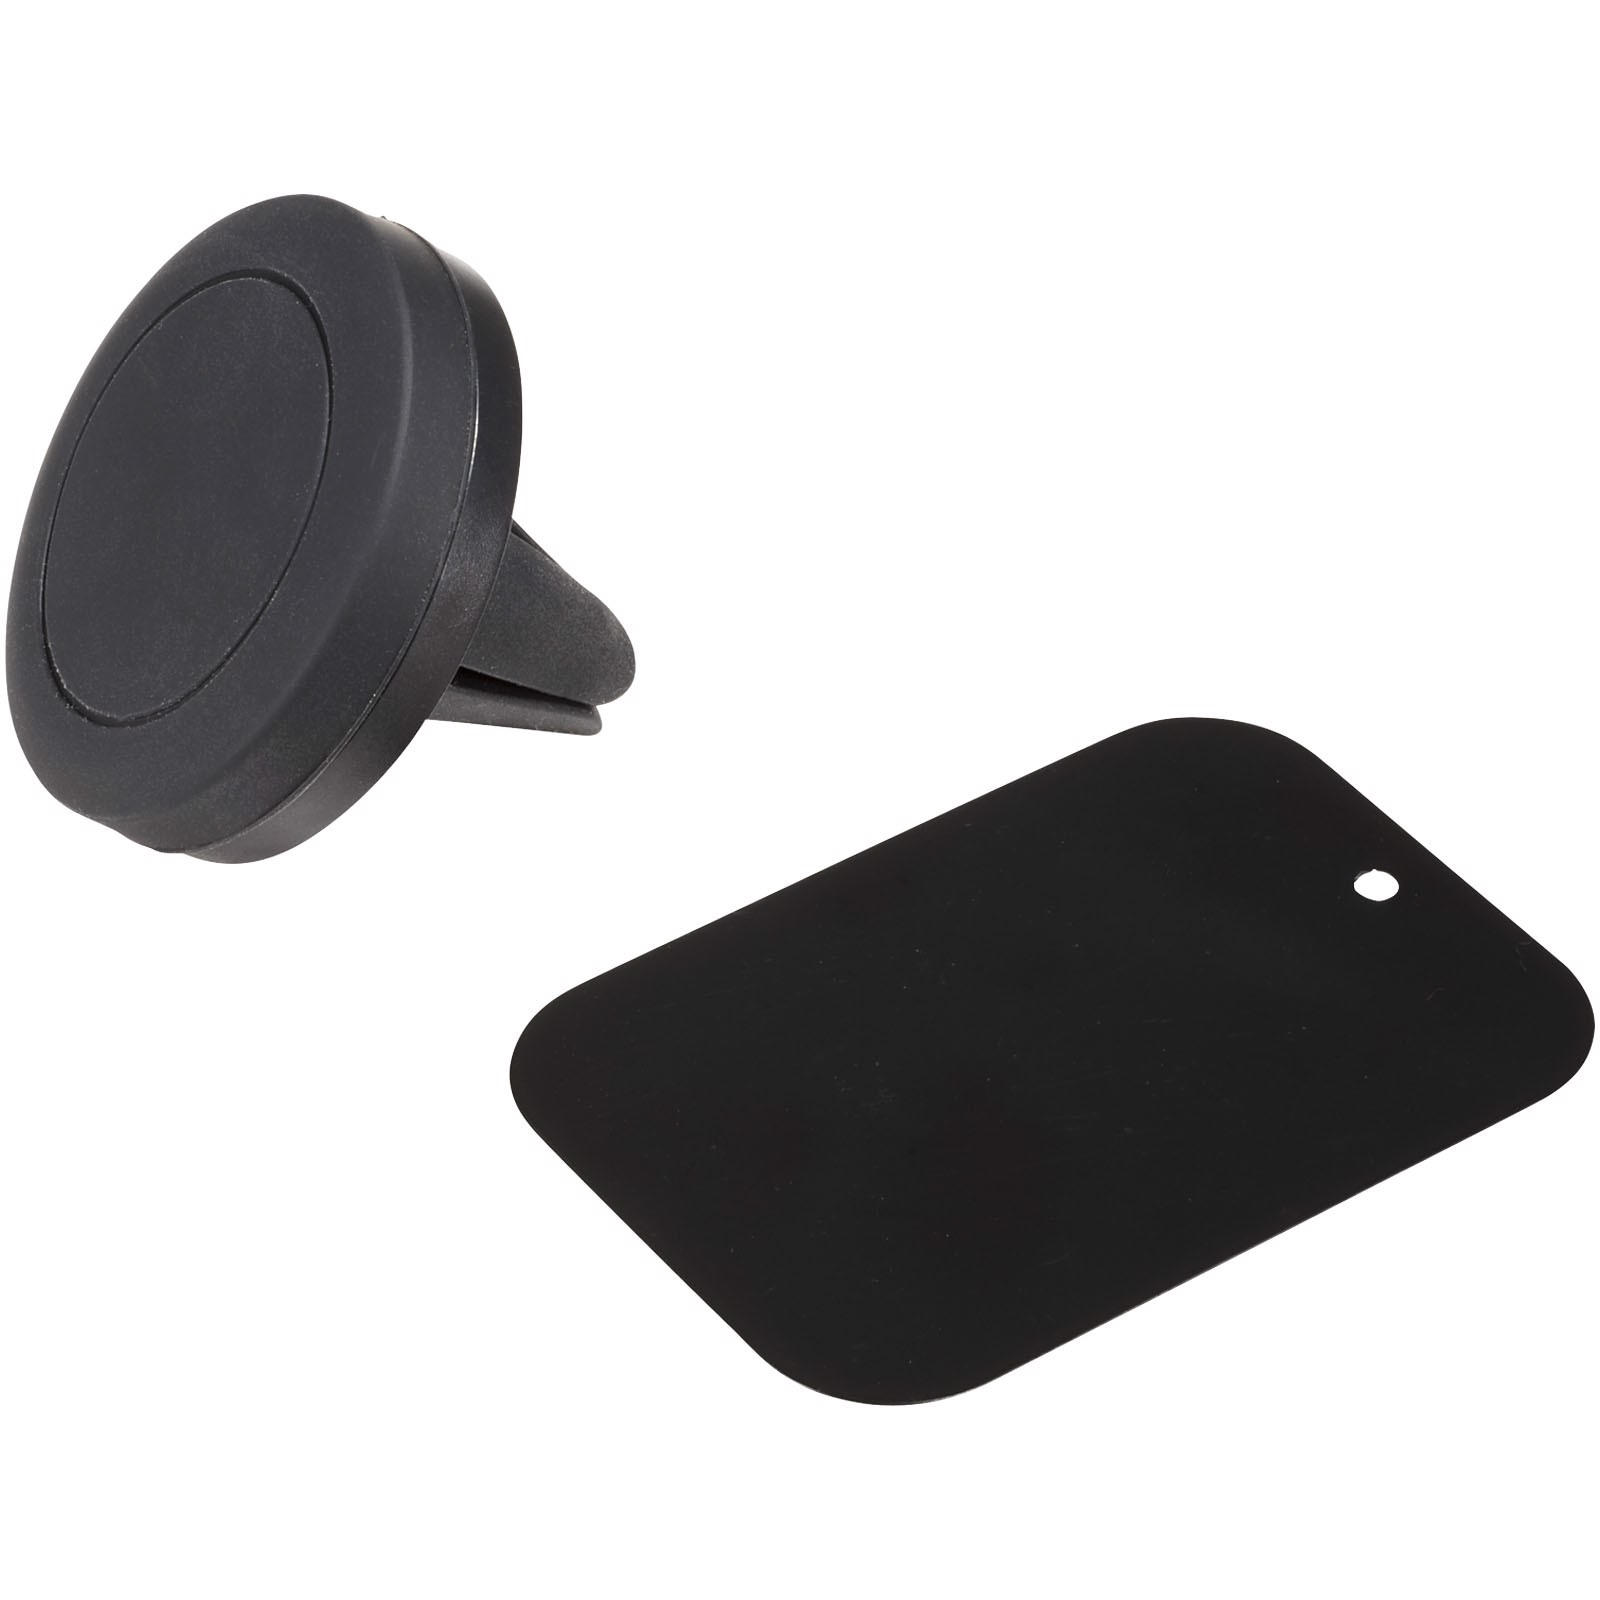 Mount-up magnetic smartphone stand